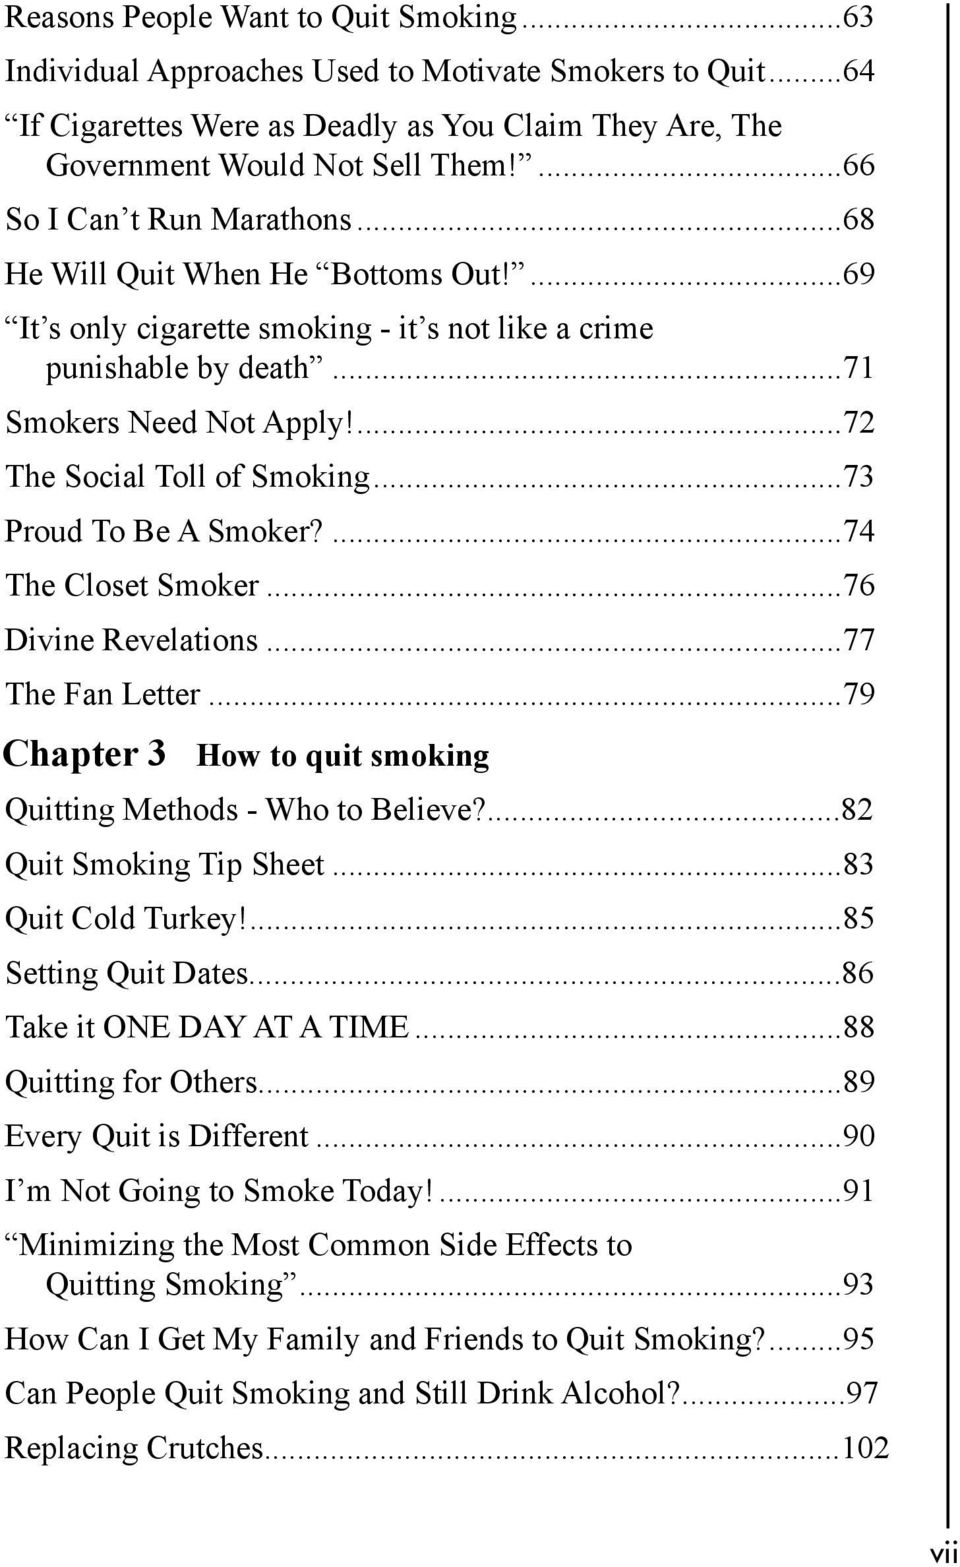 ...72 The Social Toll of Smoking...73 Proud To Be A Smoker?...74 The Closet Smoker...76 Divine Revelations...77 The Fan Letter...79 Chapter 3 How to quit smoking Quitting Methods - Who to Believe?